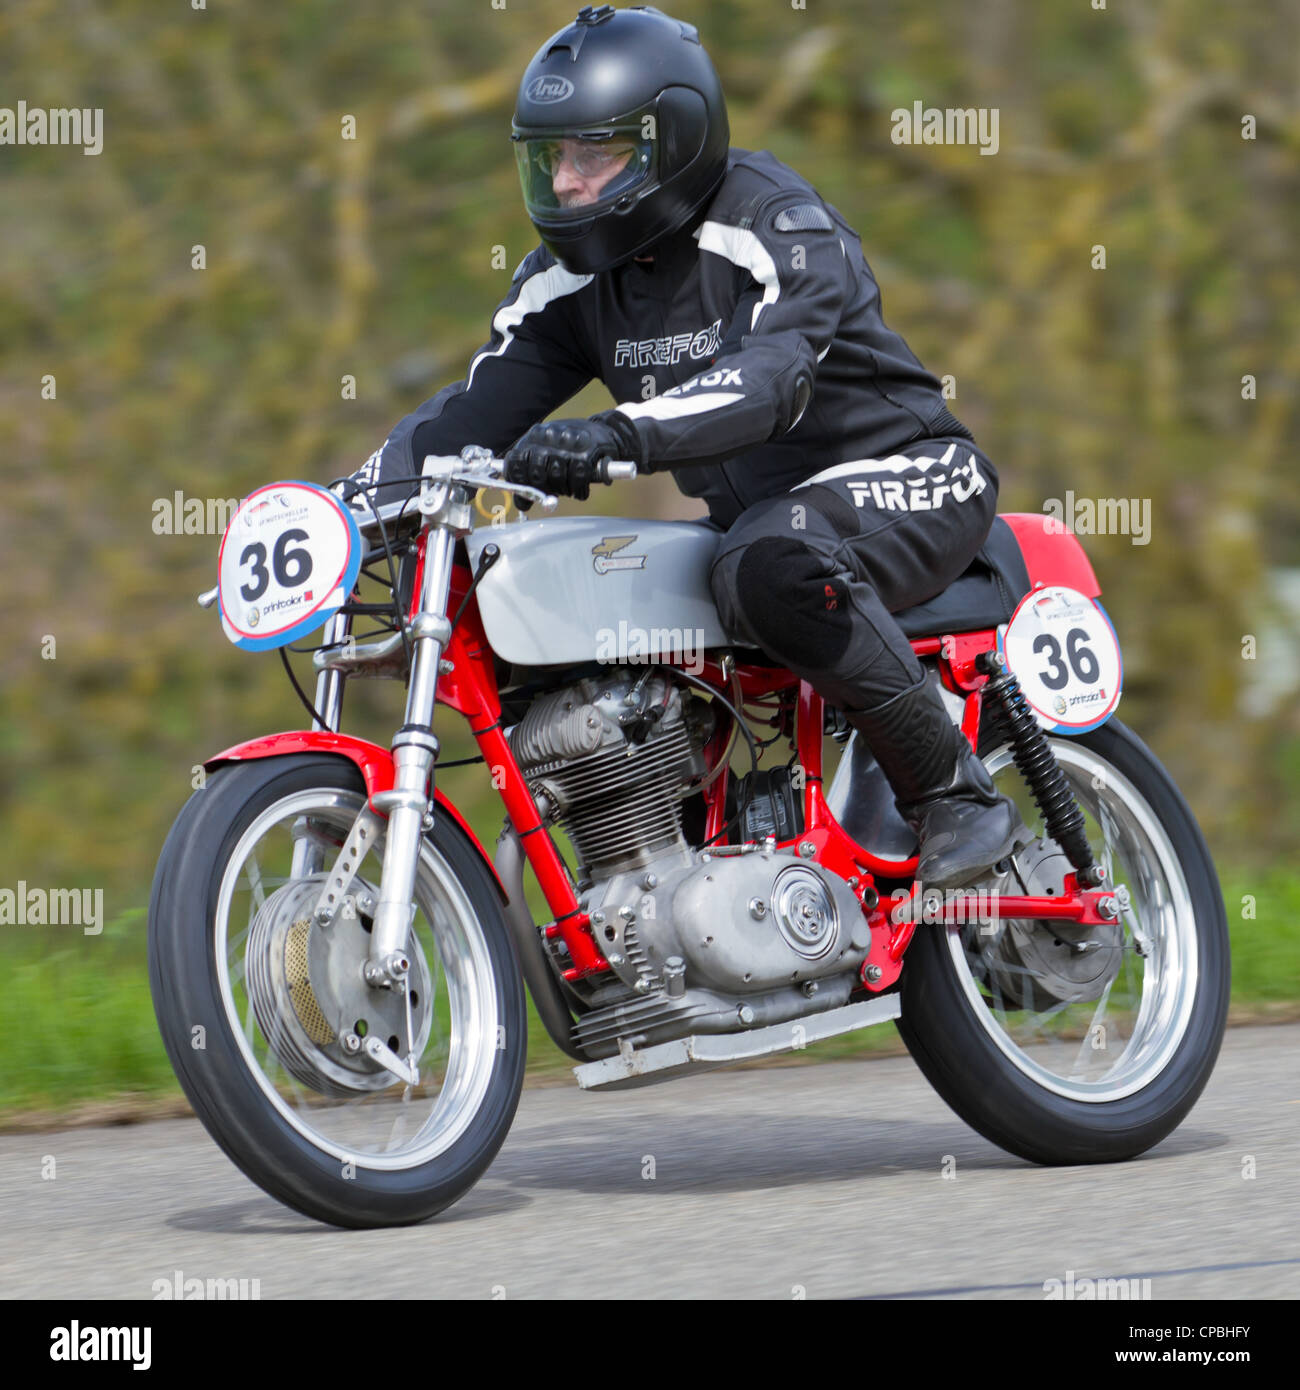 Vintage motorbike Norton Manx M40 from 1962 on display at Grand Prix in Mutschellen, SUI on April 29, 2012 - Stock Image